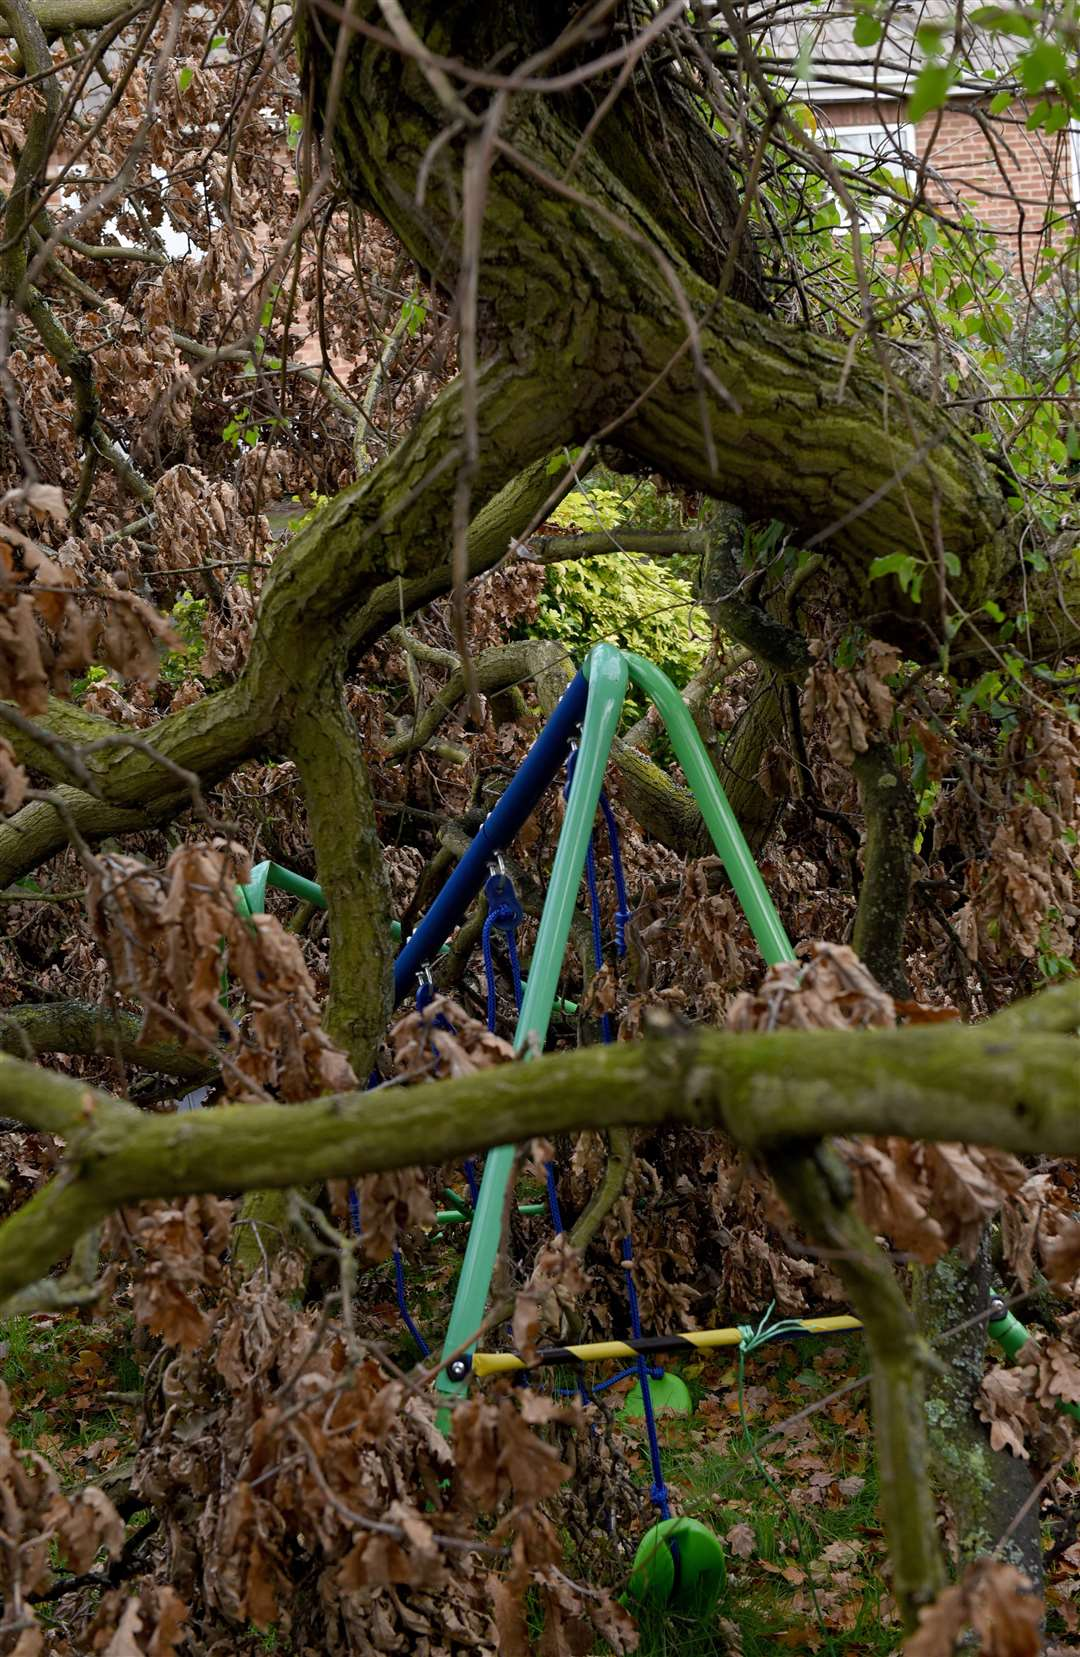 PPart of the play equipment that has been destroyed by the fallen tree in the garden of Daryle Taylor